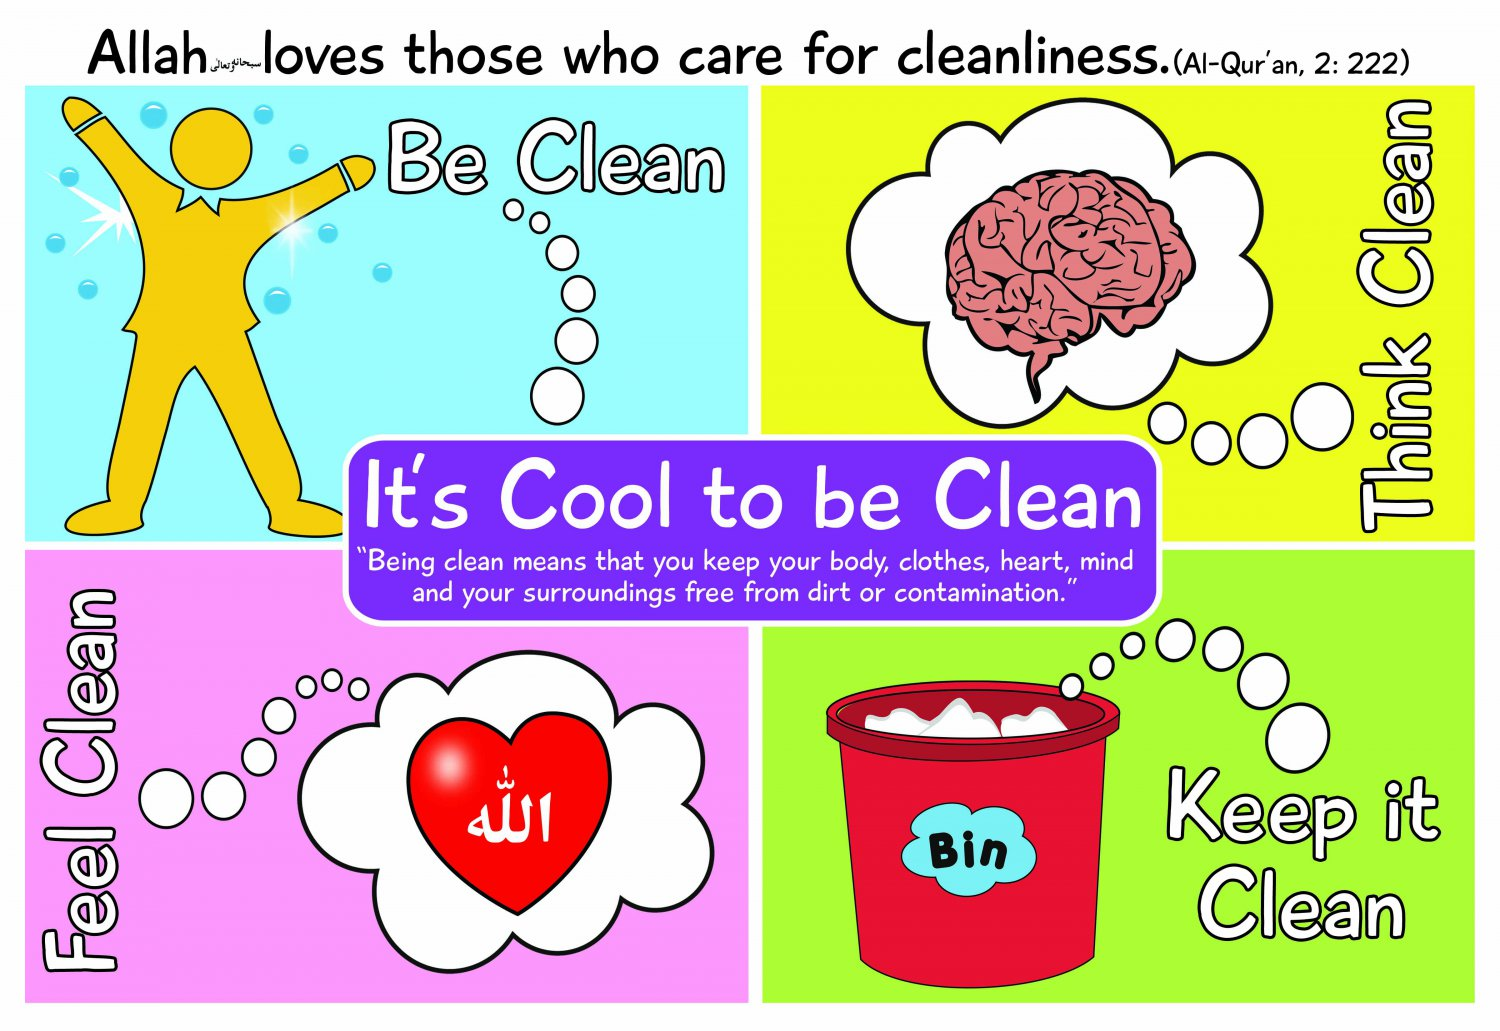 cleanliness cleanliness Define cleanliness cleanliness synonyms, cleanliness pronunciation, cleanliness translation, english dictionary definition of cleanliness adv.